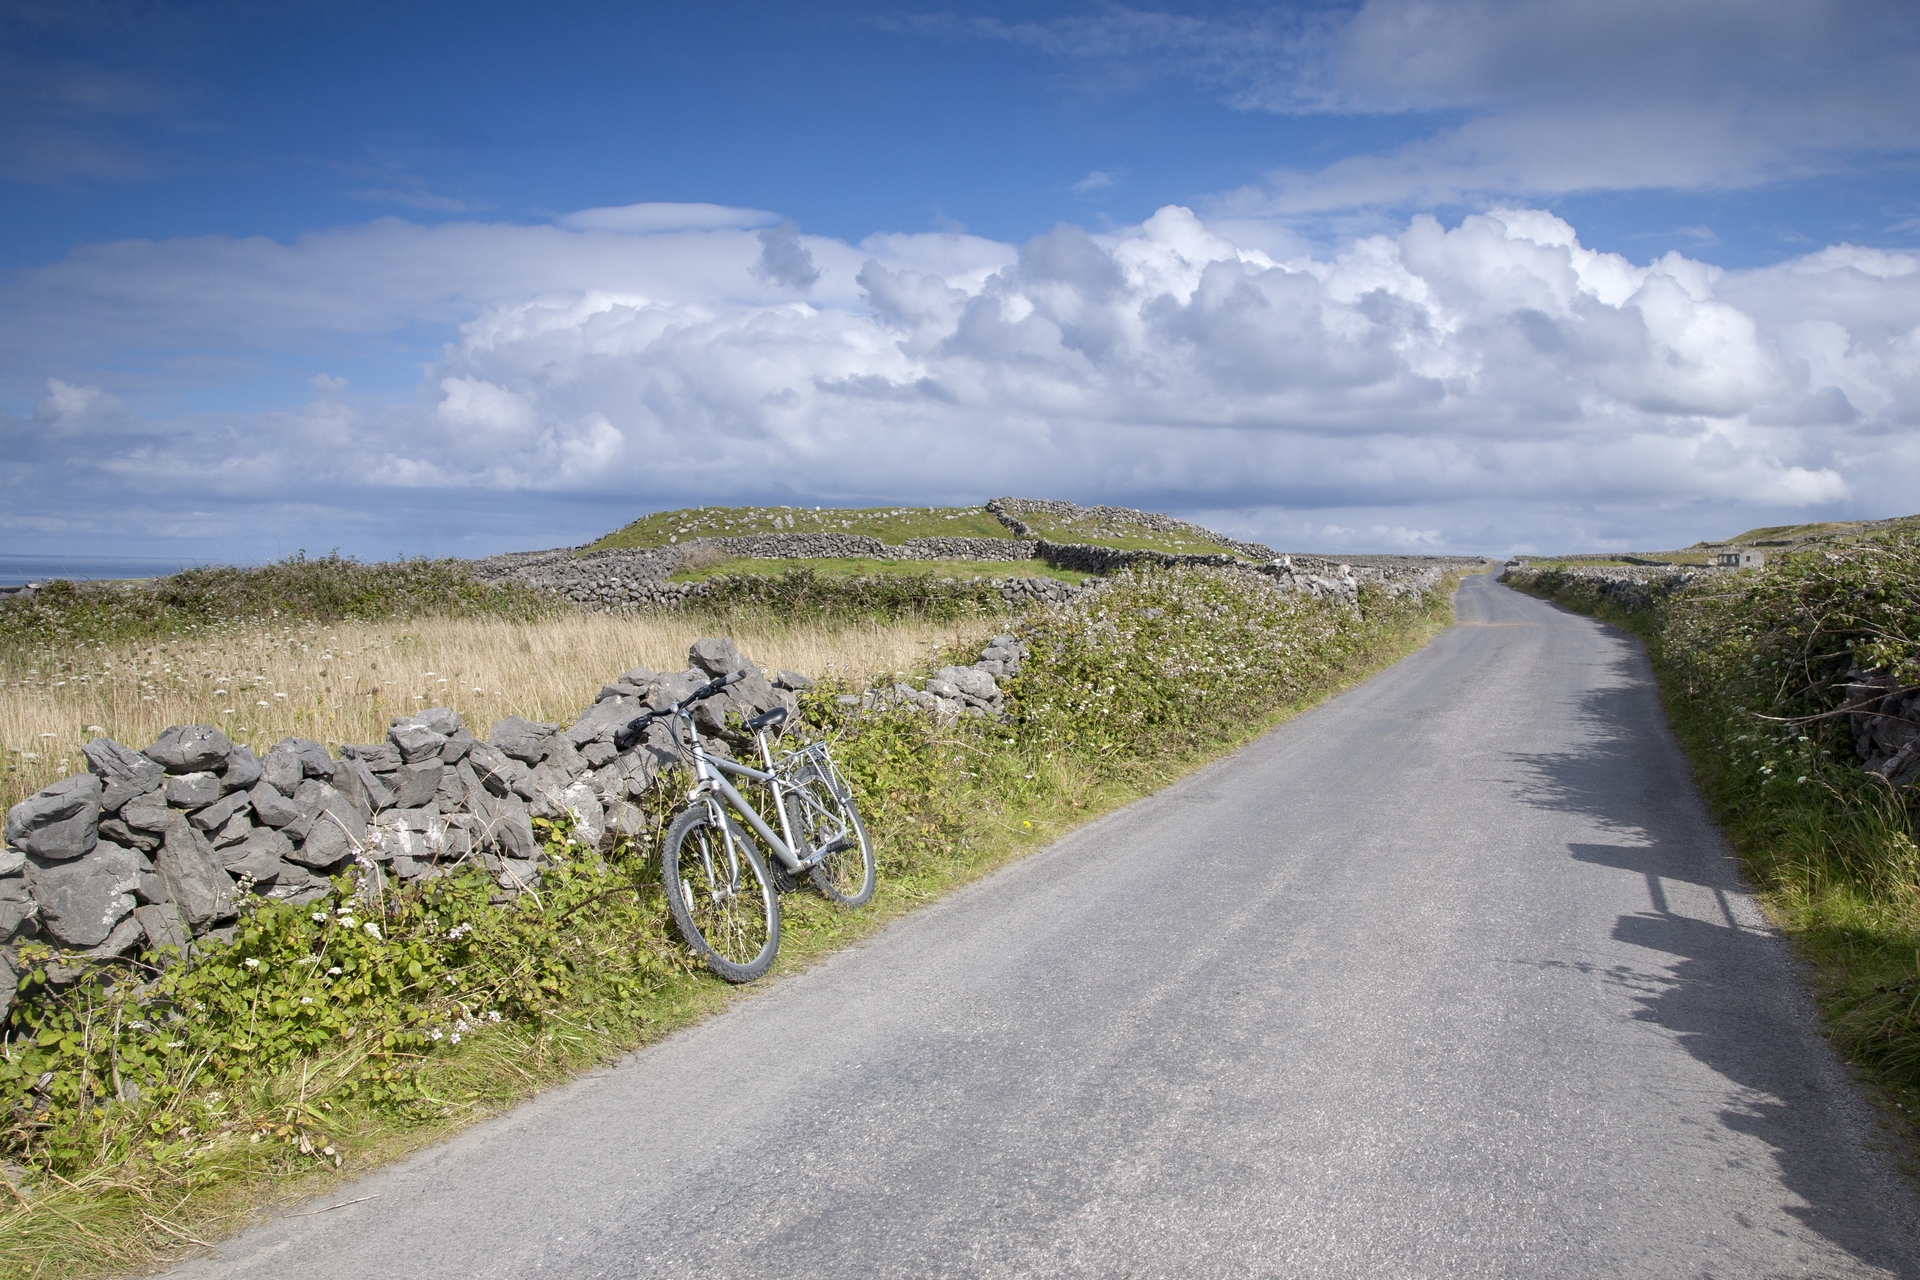 Get around the island by bike or on foot.